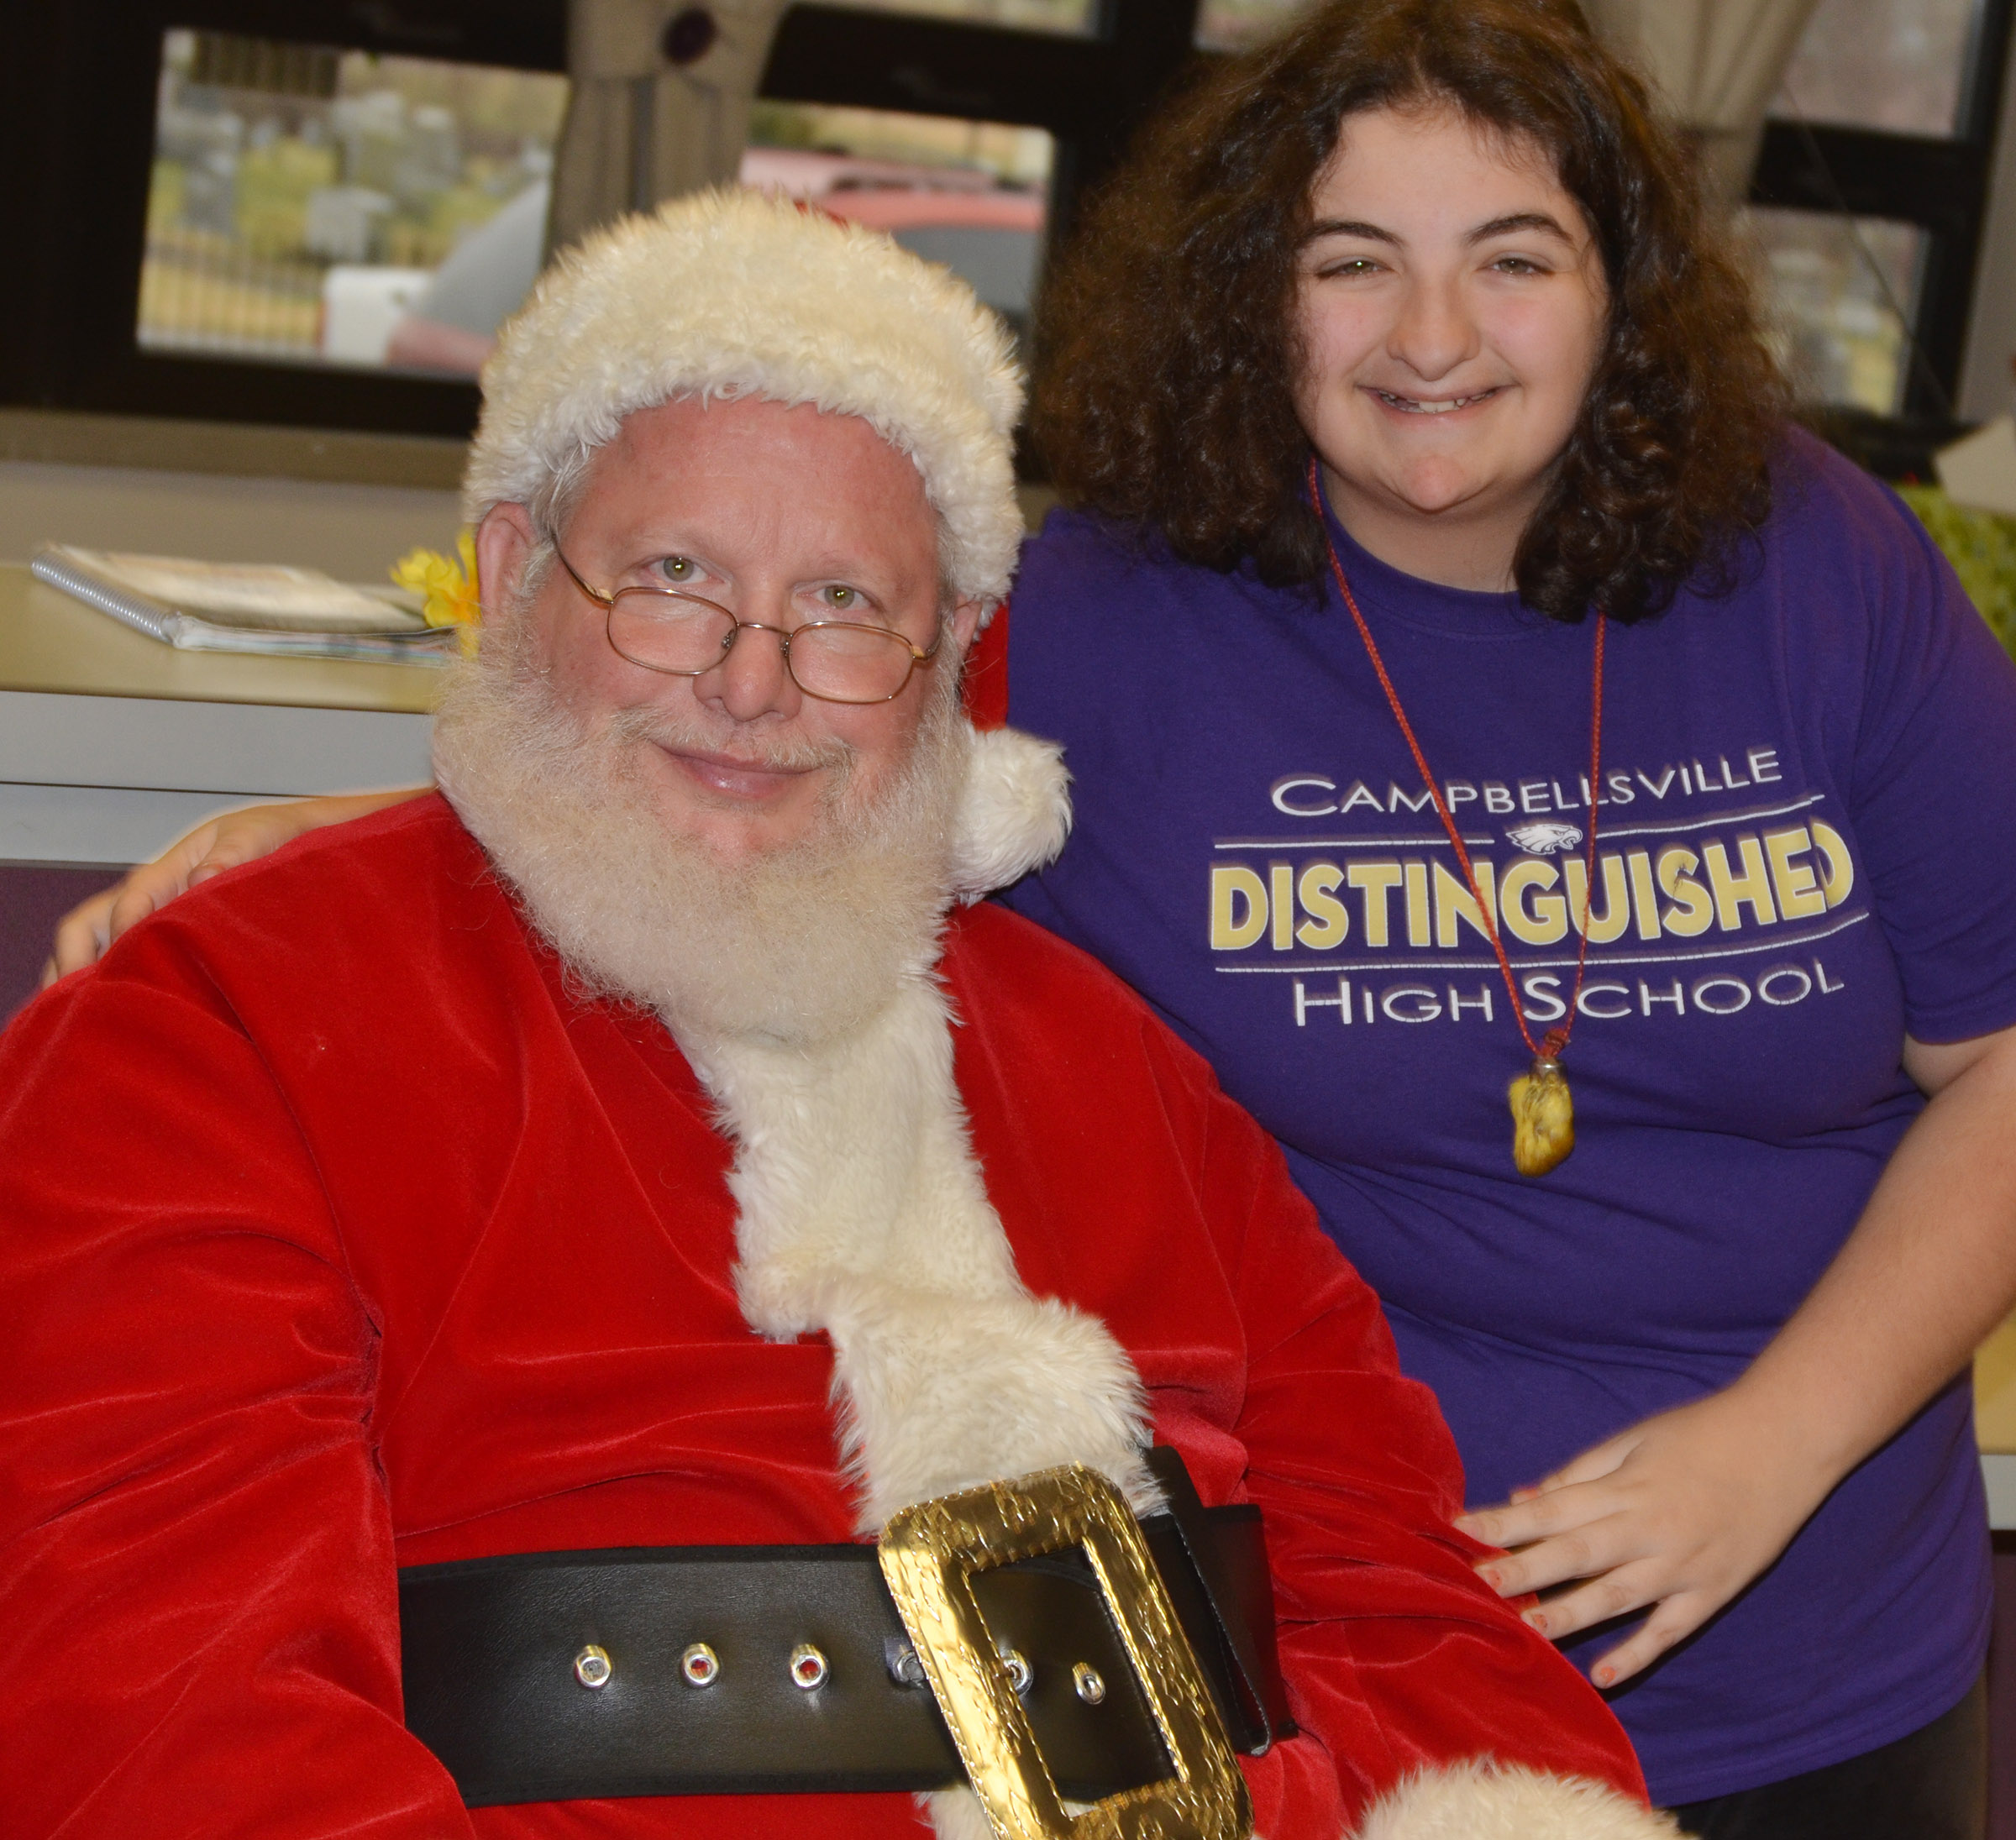 CHS sophomore Brooke Tucker smiles for a photo with Santa.